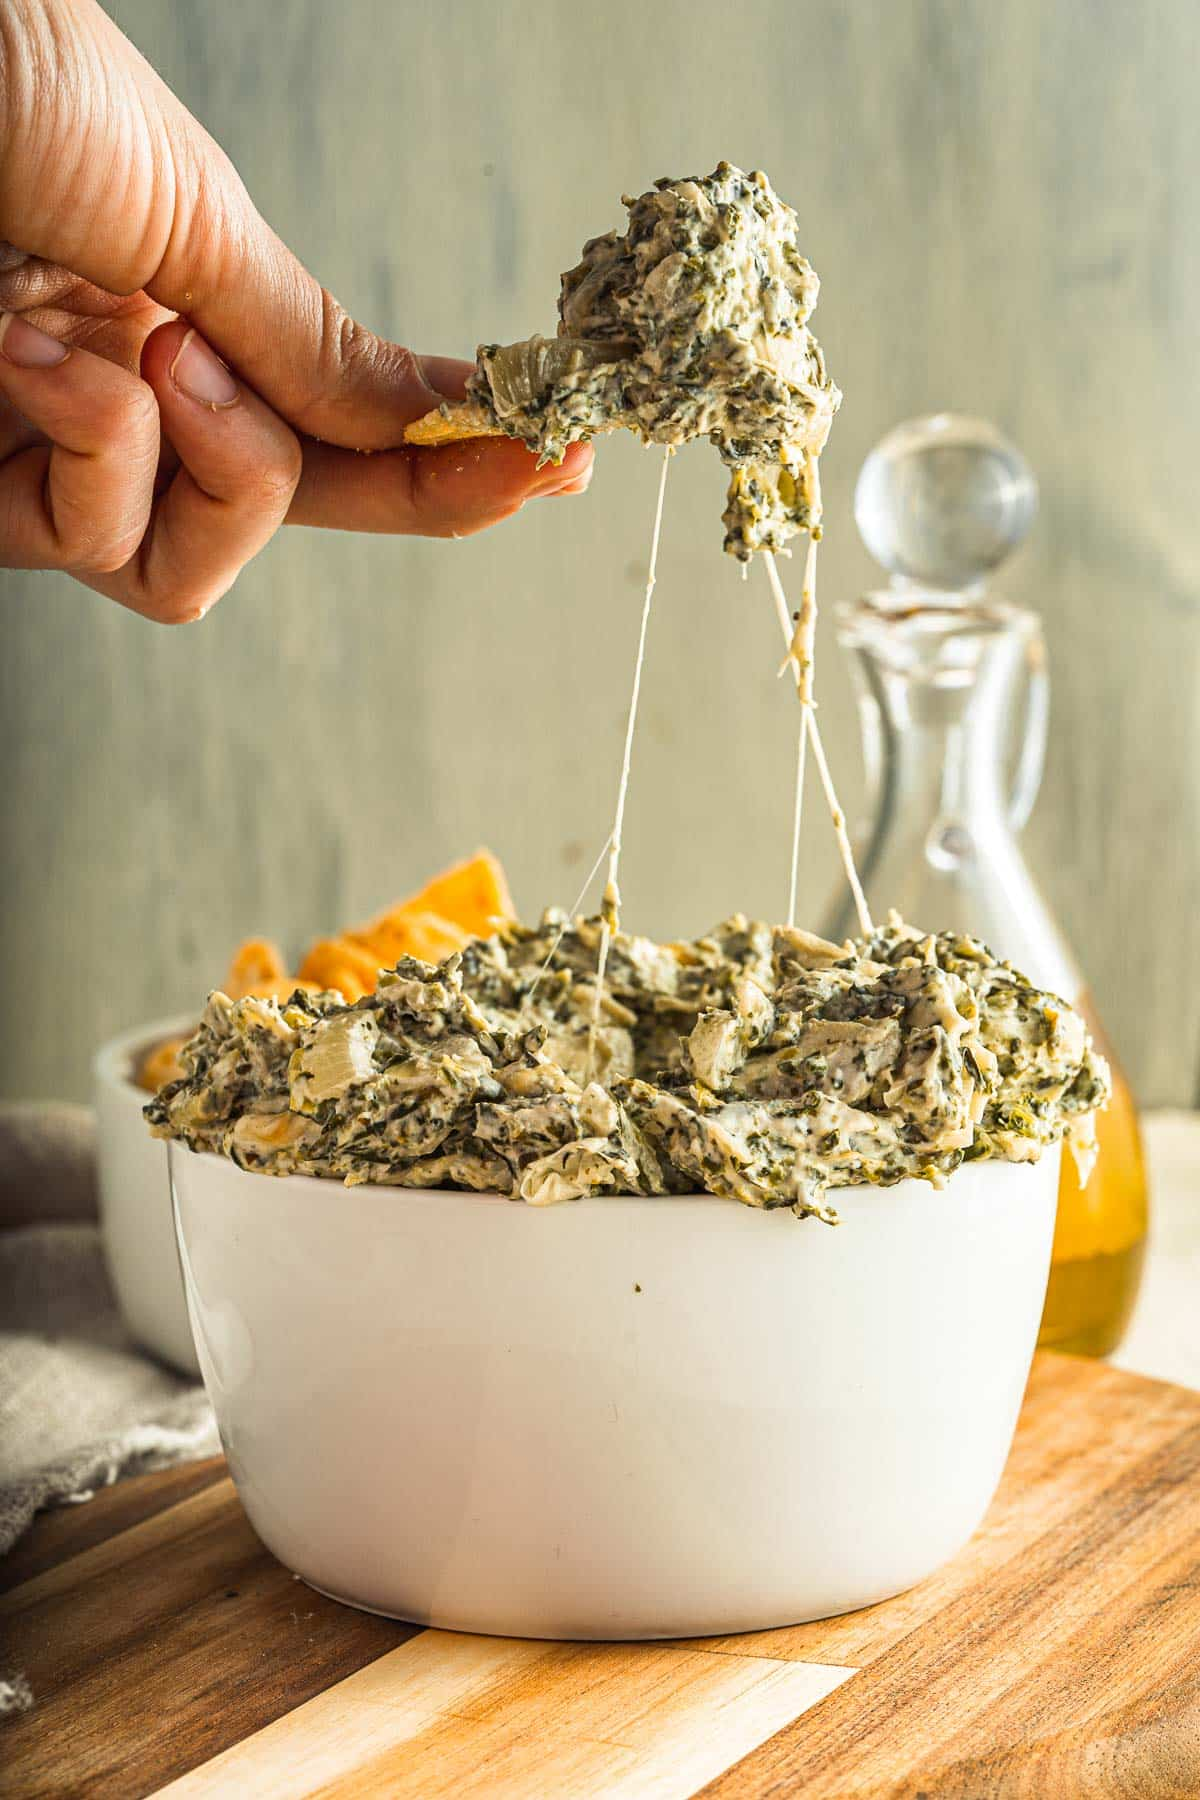 spinach artichoke dip being scooped up from a bowl with strings of cheese